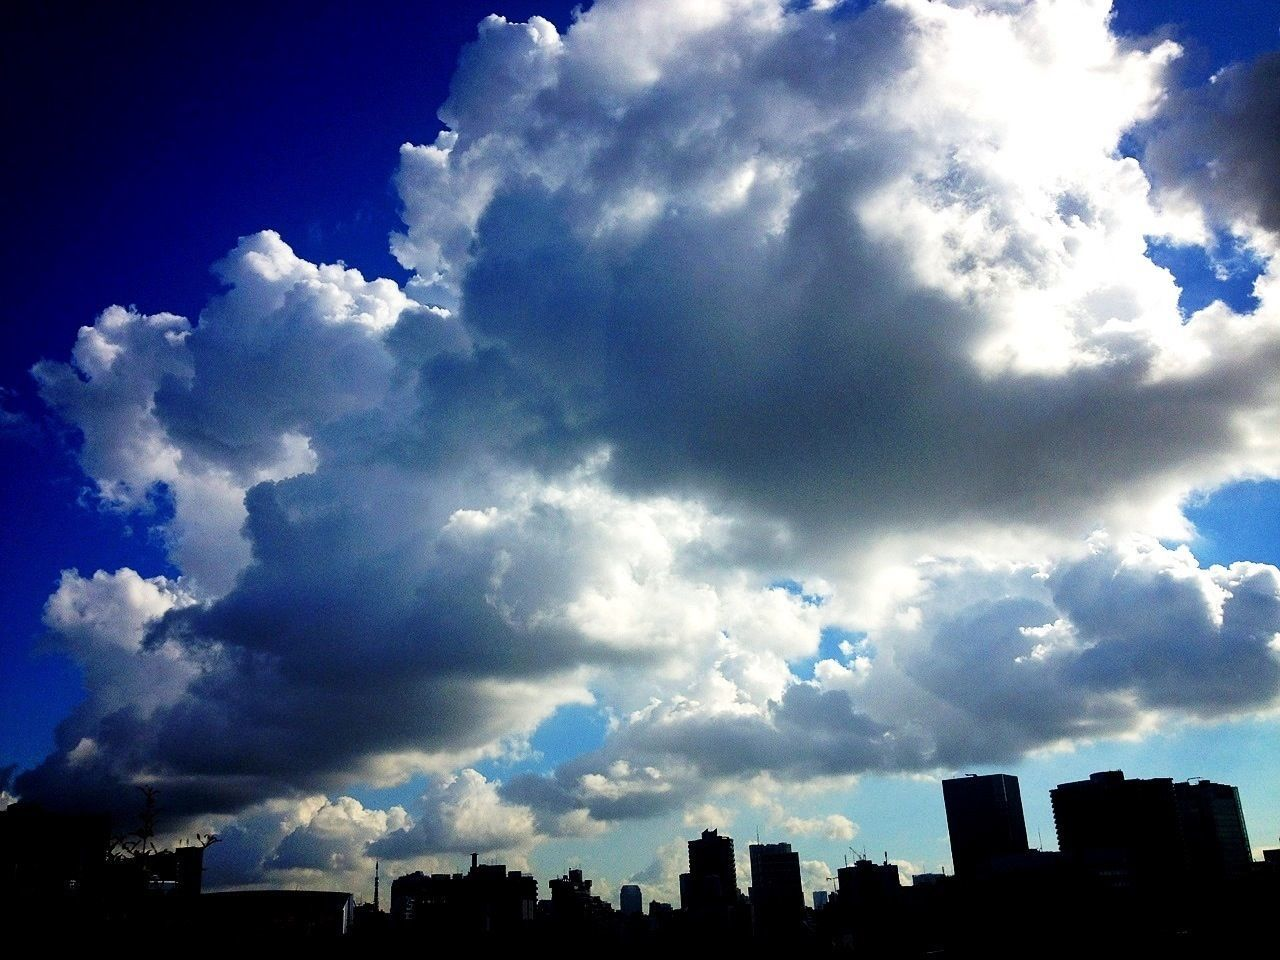 Cloudscape over city